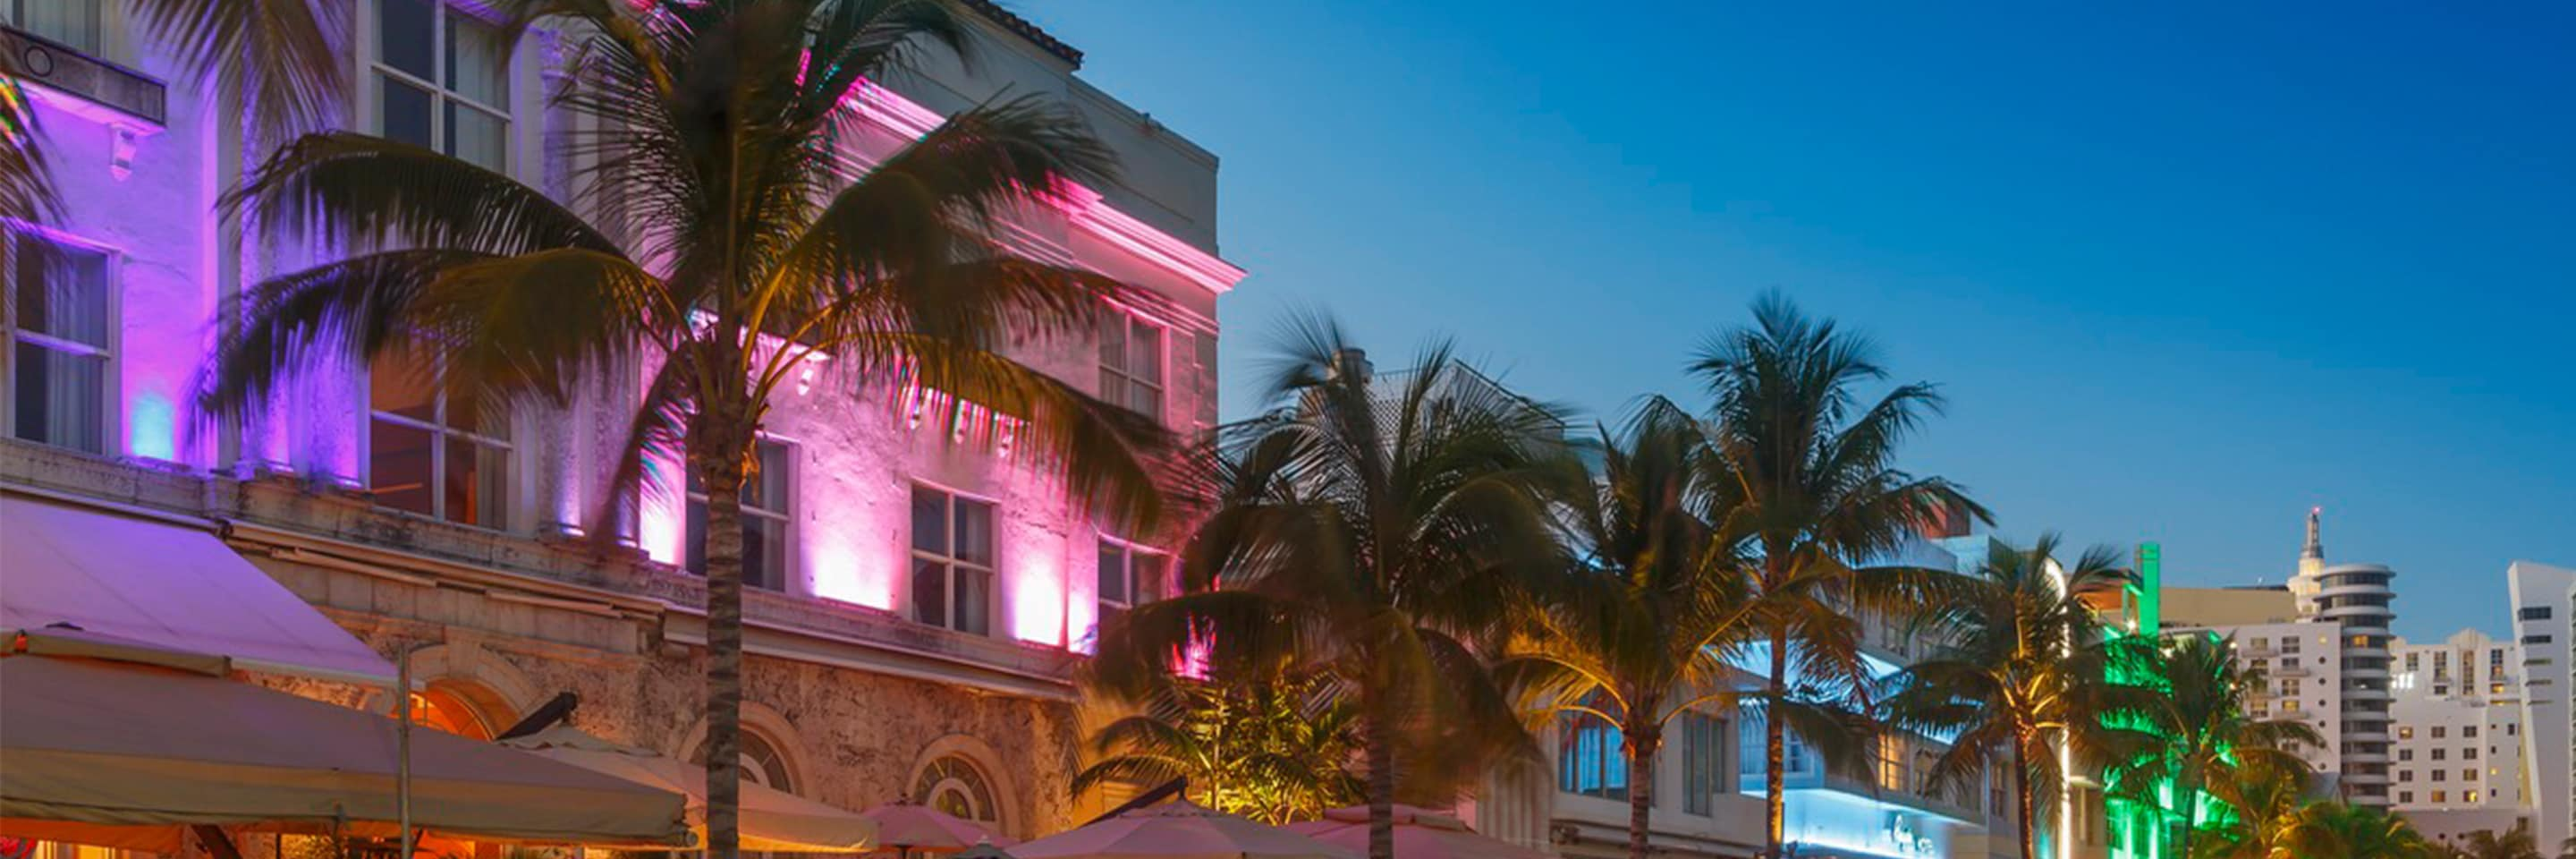 Miami Hotels Outlet Student Discount Code